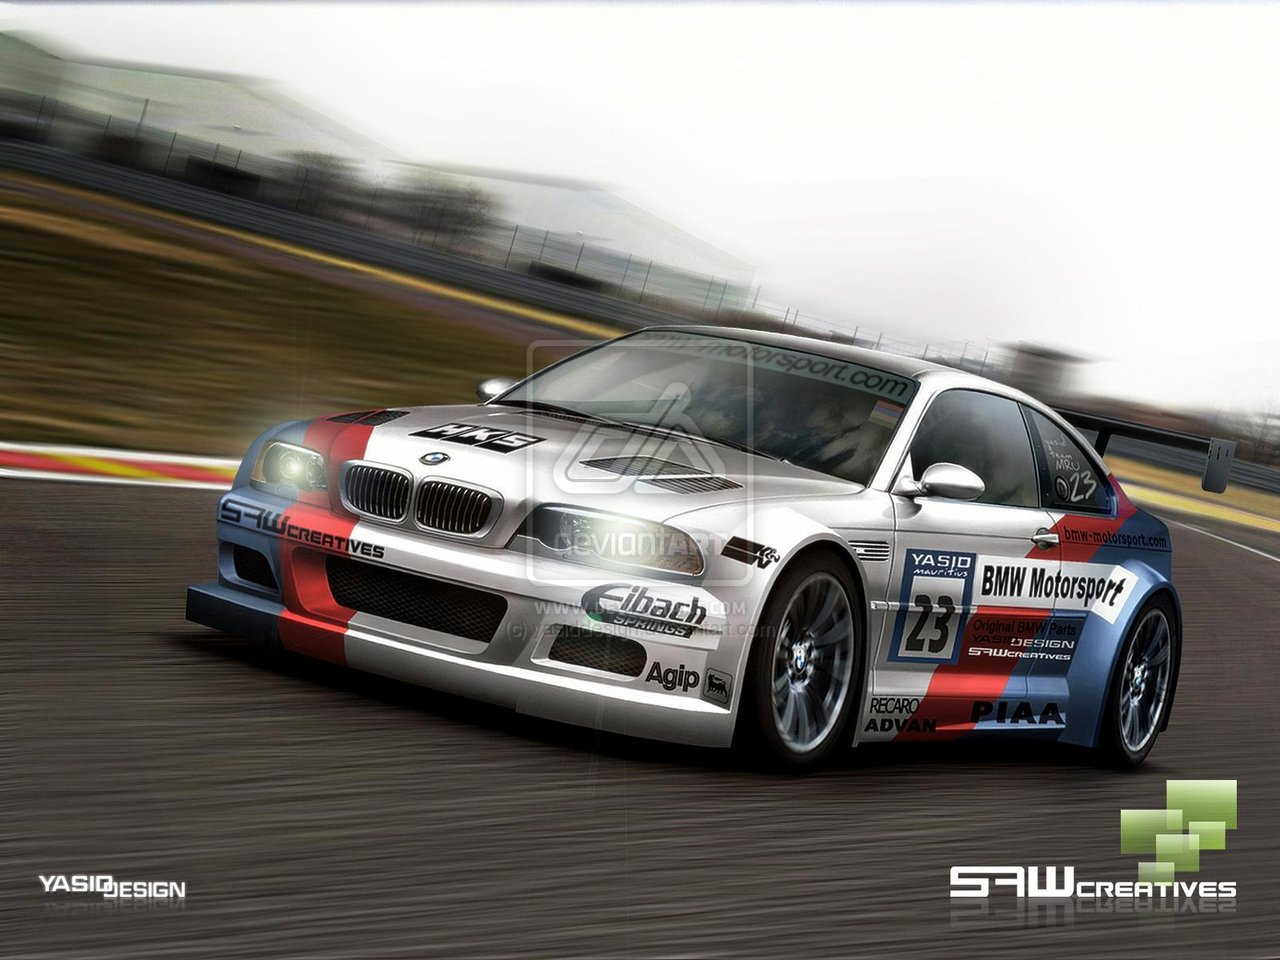 BMW_M3GTR_race_yasidDesign_by_yasiddesign.jpg